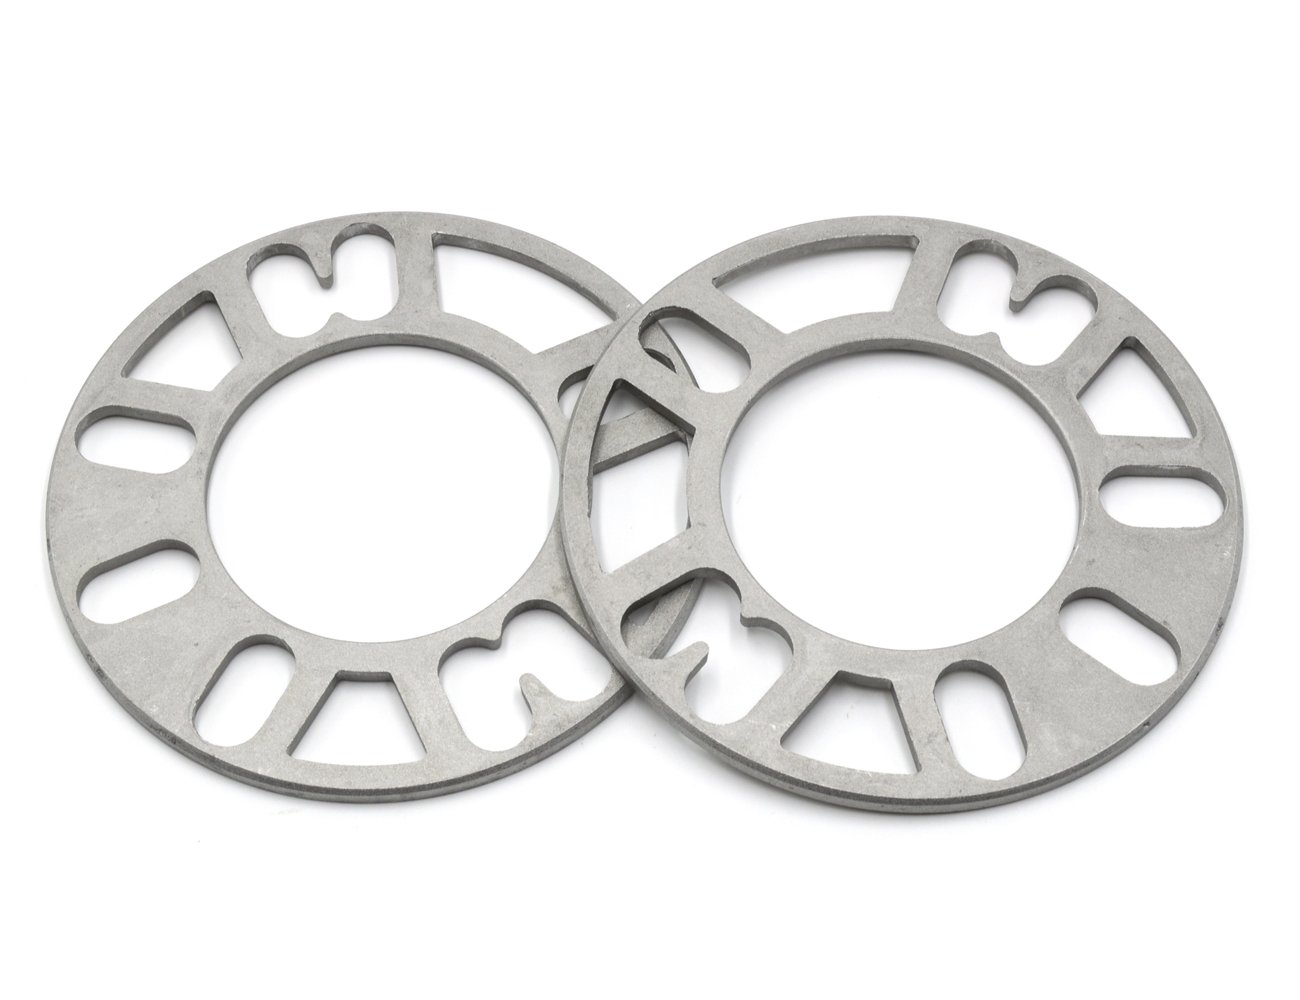 GoldenSunny Pack of 2, Aluminum Alloy 4 and 5 Lug 5mm Thickness Universal Wheel Spacers - Fit PCD 98-120 by GoldenSunny (Image #3)